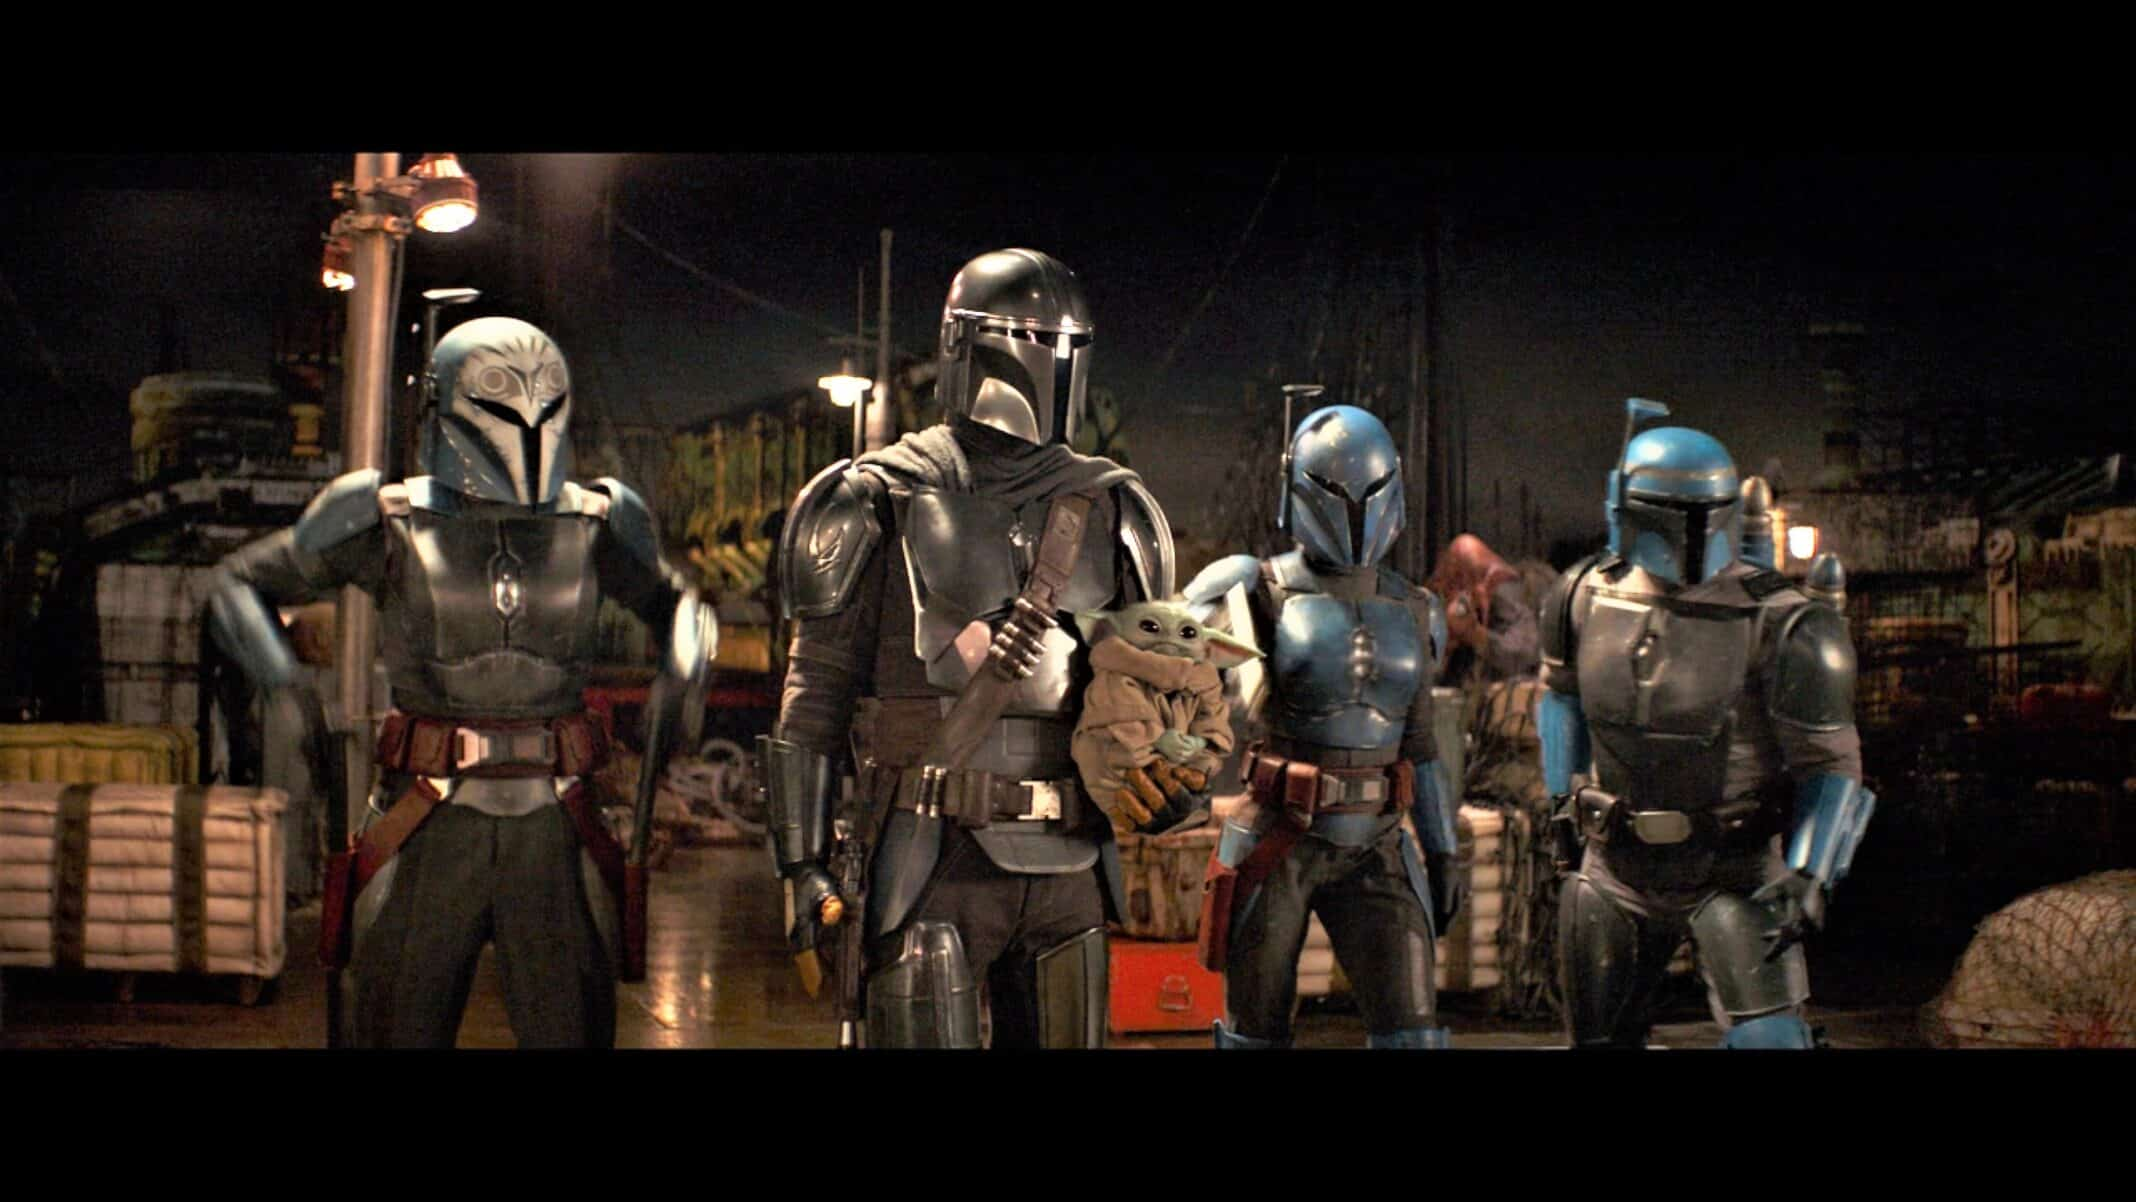 Axe (Simon Kassianides), Bo-Katan (Katee Sachoff), Koska Reeves (Mercedes 'Sasha Banks' Varnado) and Din standing together